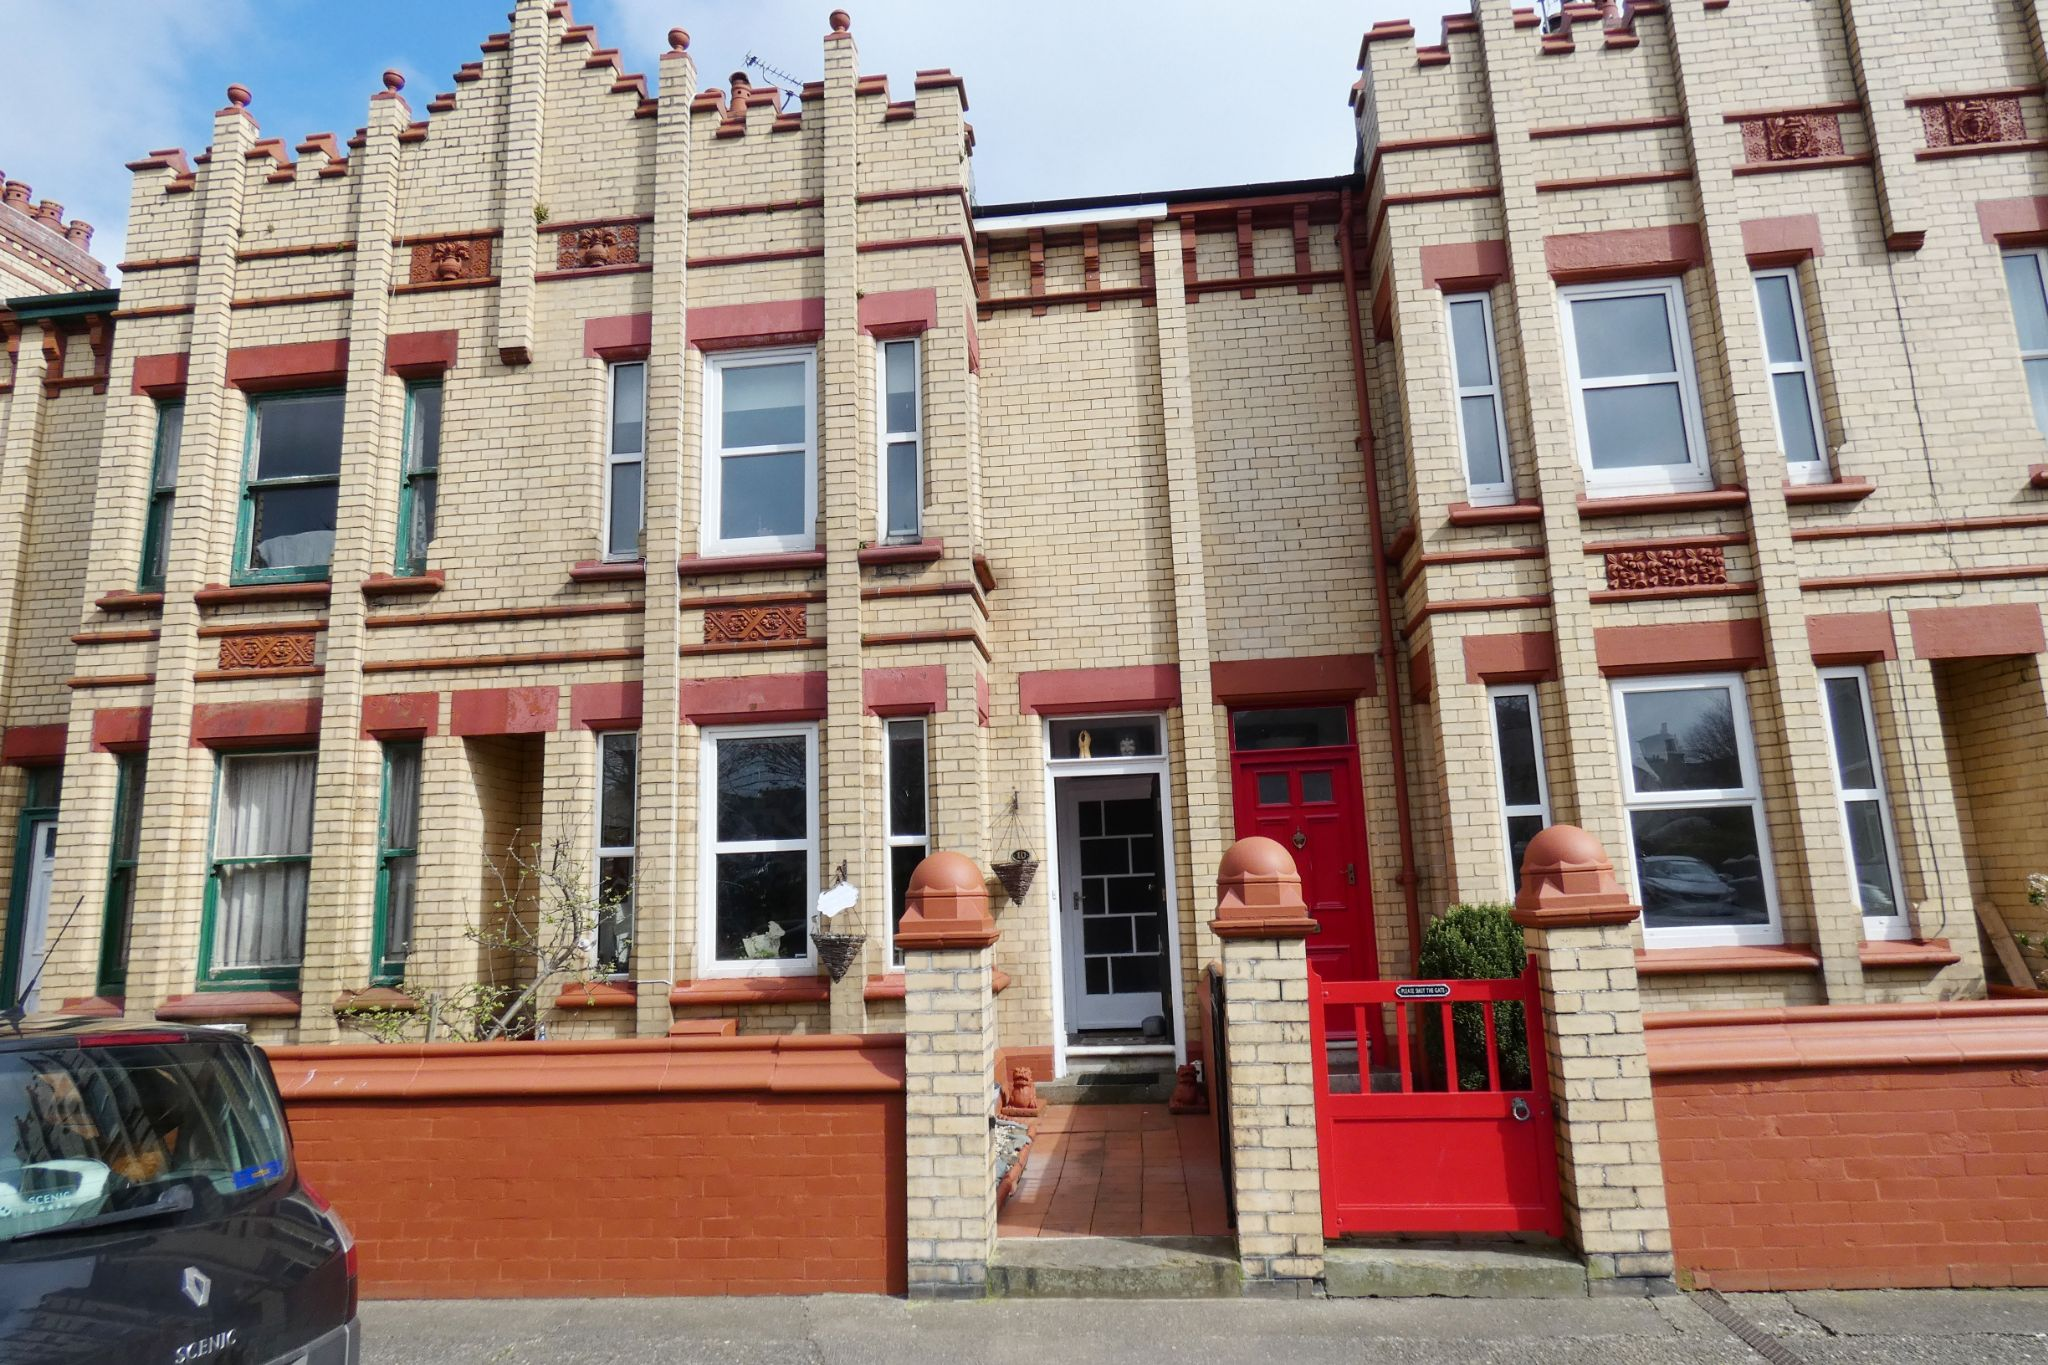 4 bedroom mid terraced house SSTC in Douglas - Photograph 1